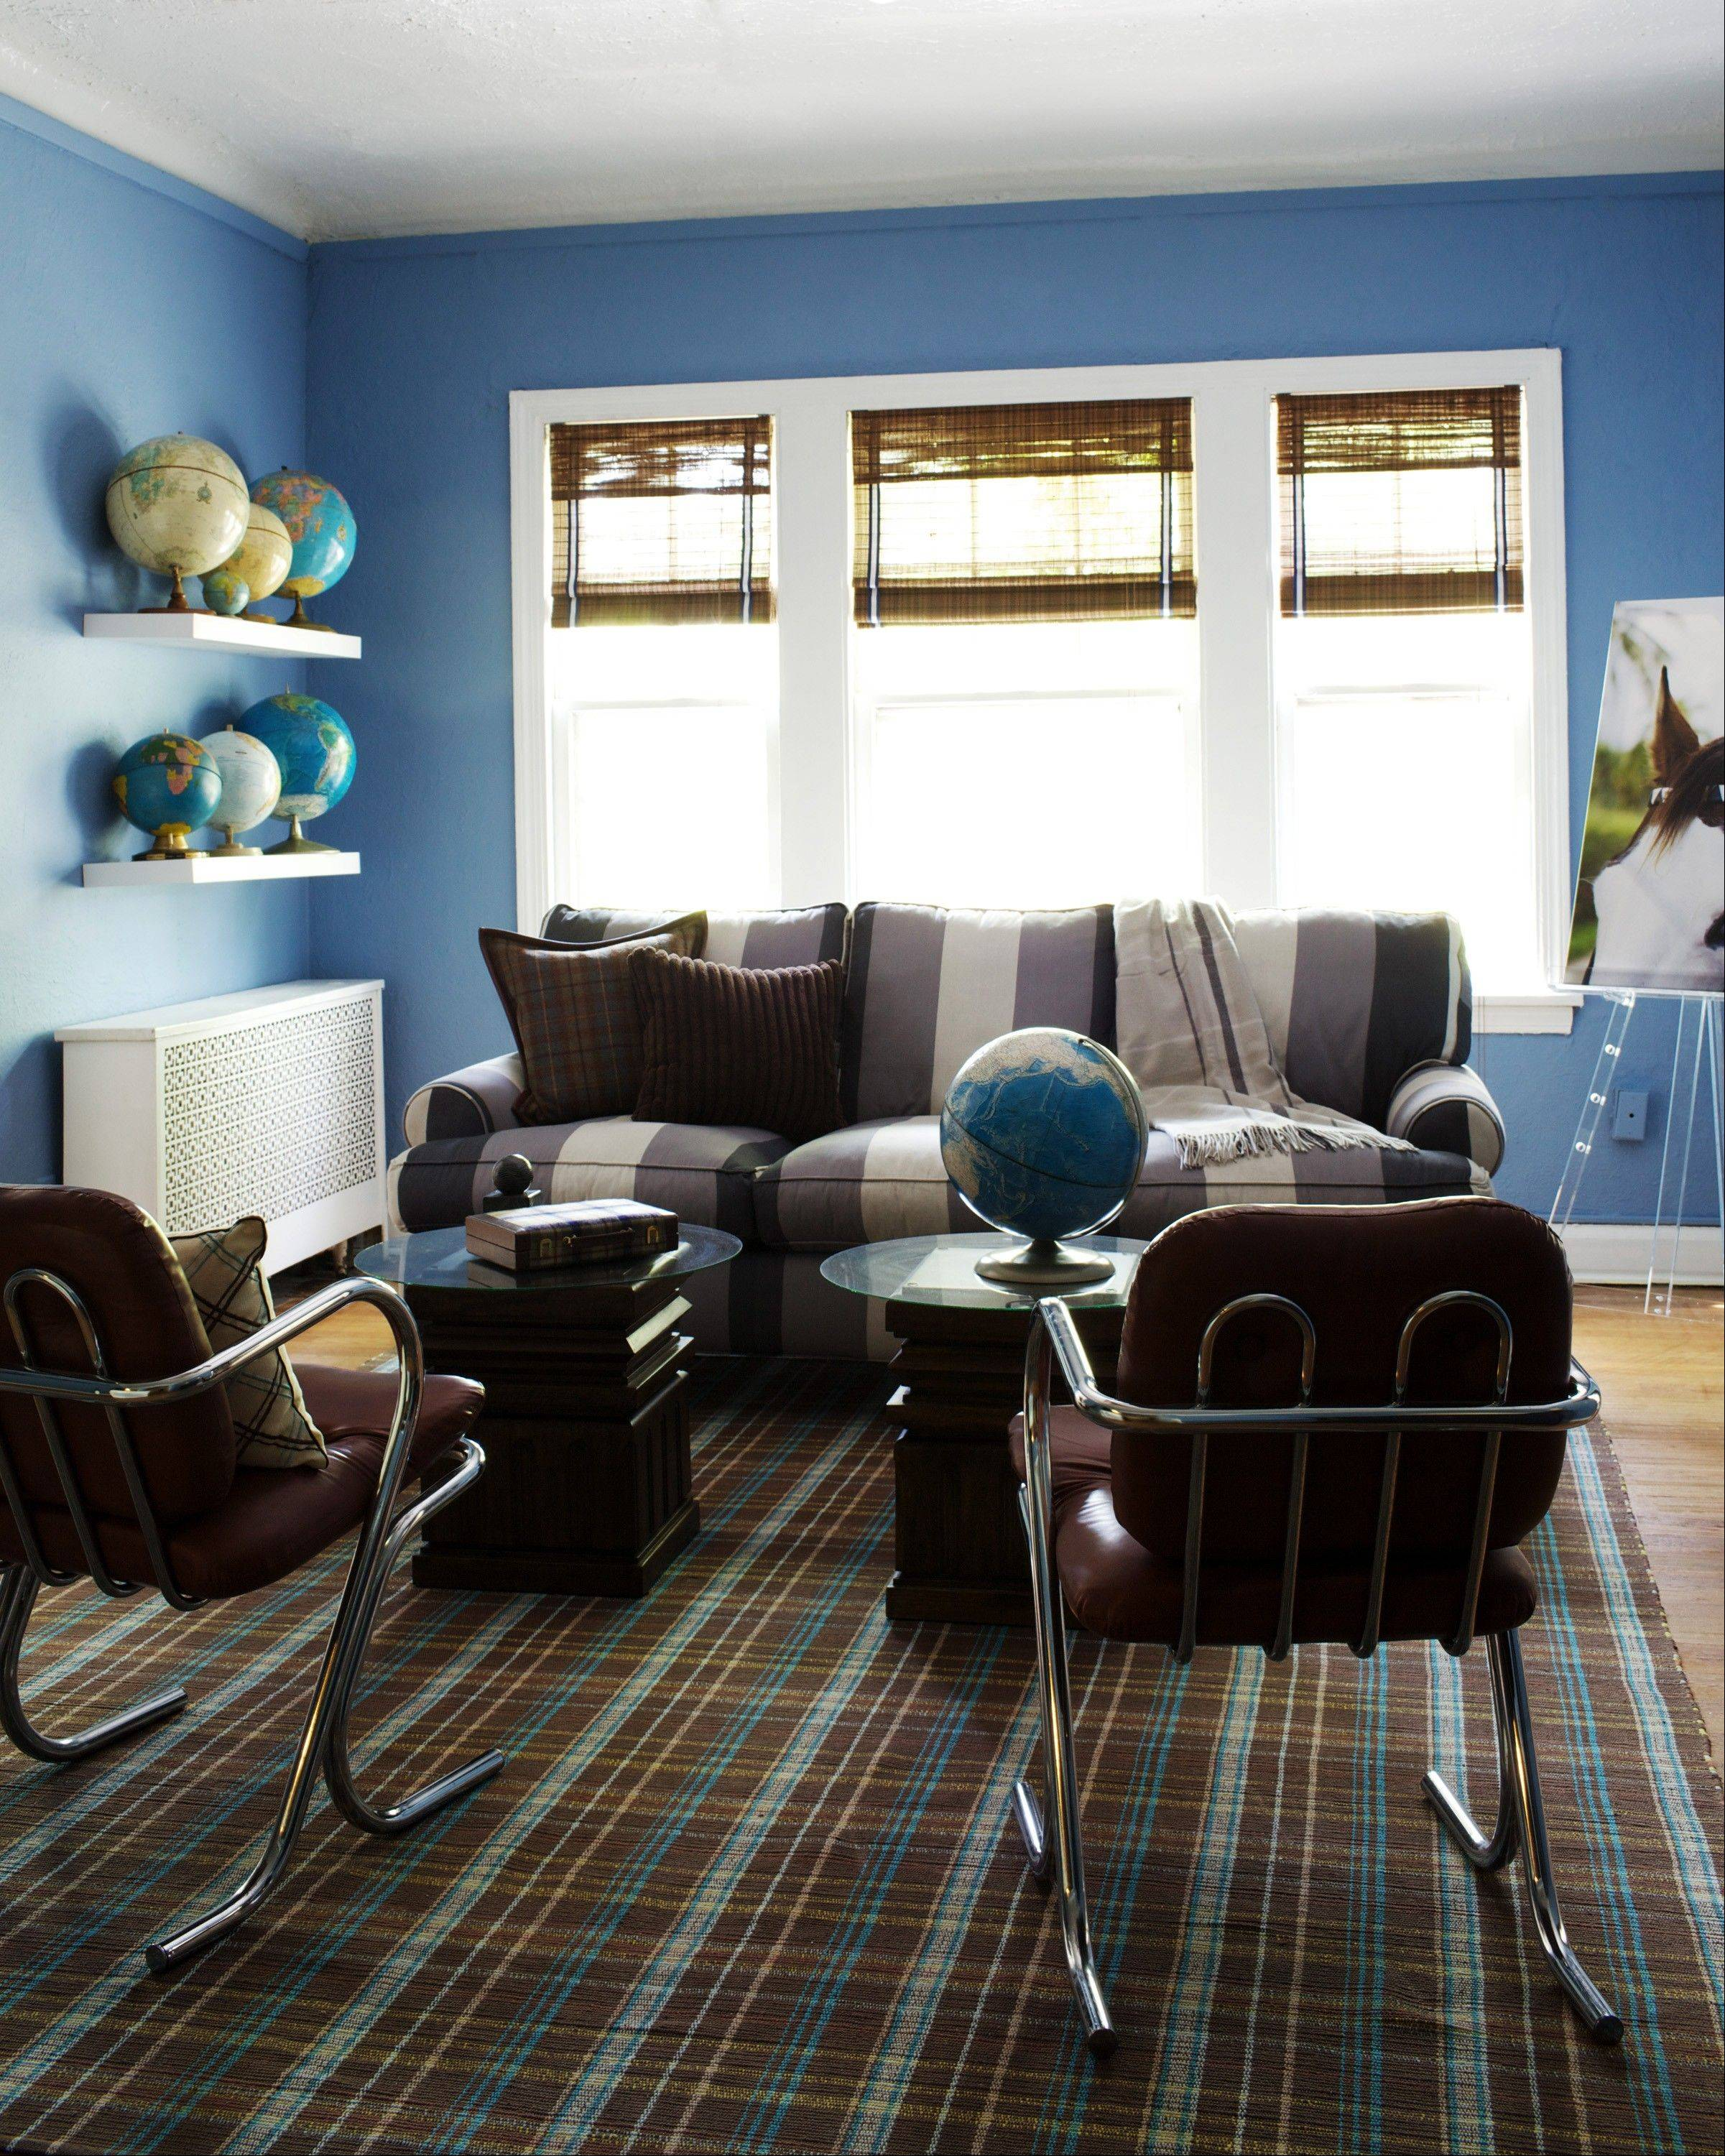 A bold sofa pattern and plaid carpet add personality to an apartment.